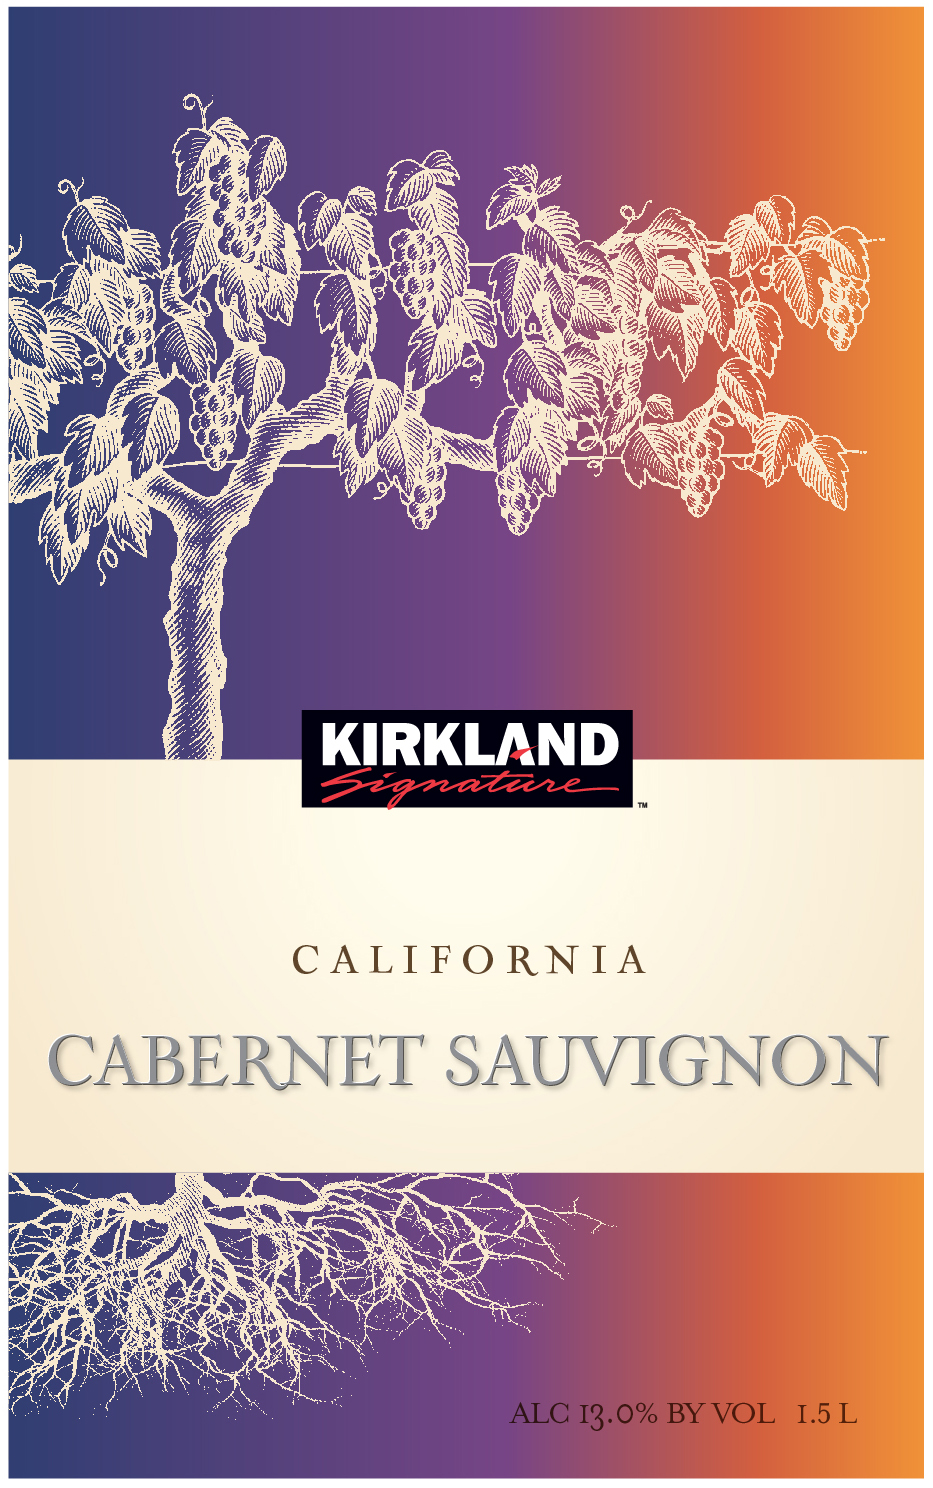 Kirkland Signature California Cabernet Sauvignon is a classic Cabernet Sauvignon with vibrant, juicy flavors of black currant with broad, red fruit notes that linger on the palate and are surrounded by hints of spice and sweet smoke with a graceful finish of cherry and mocha.